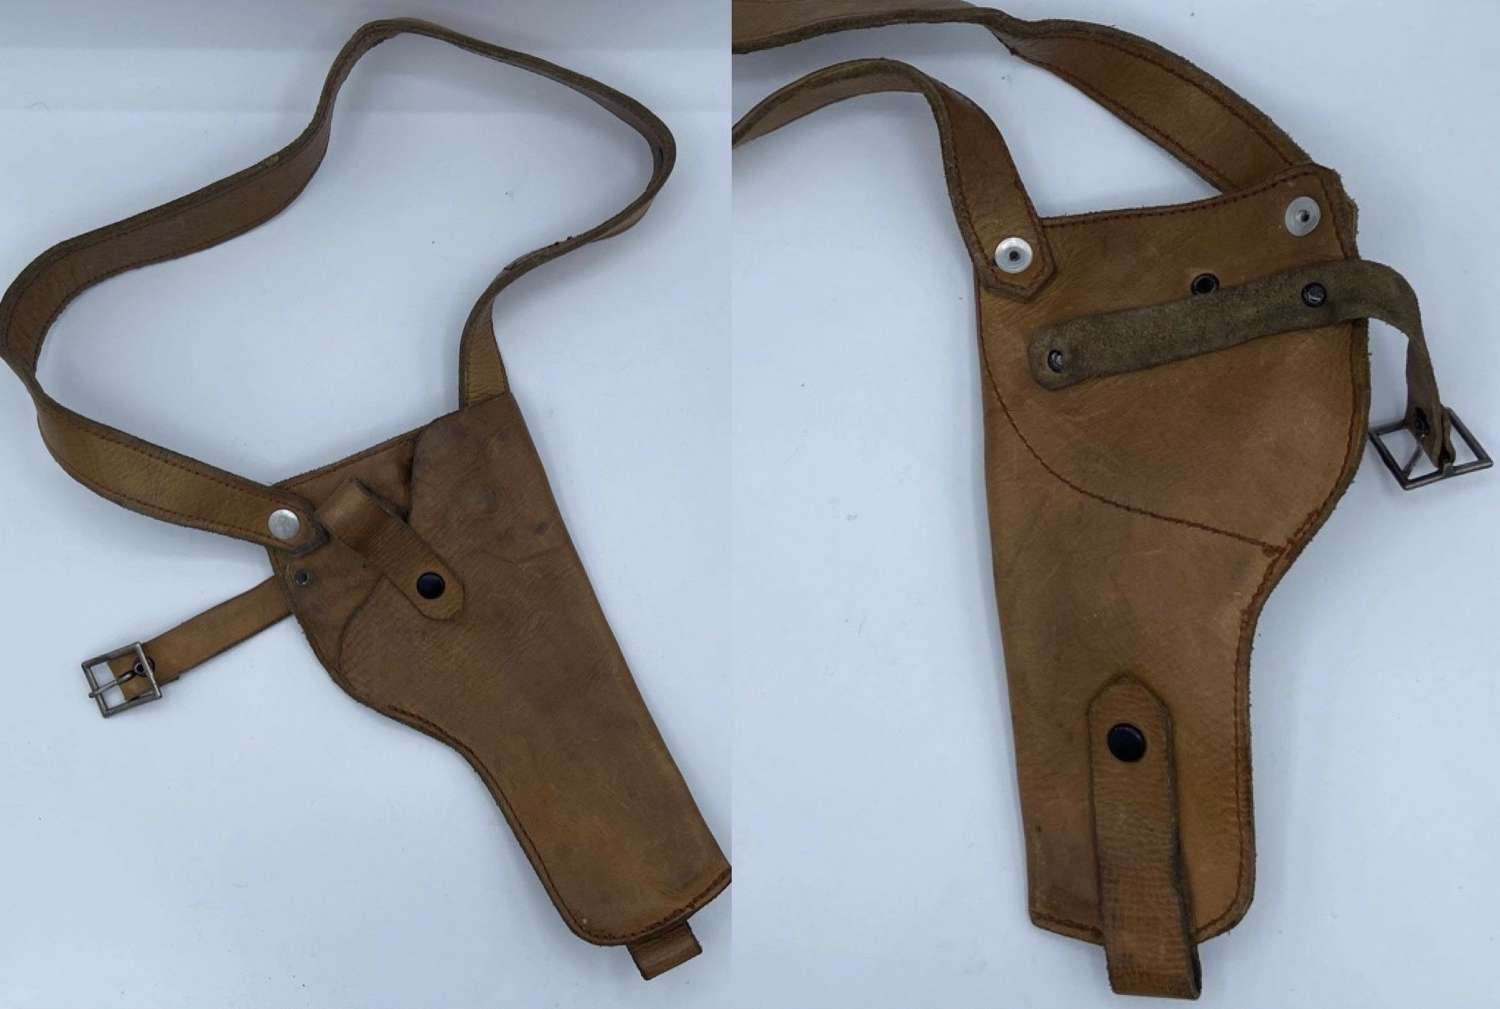 1950s French Police Leather Pistol Holster And Strap